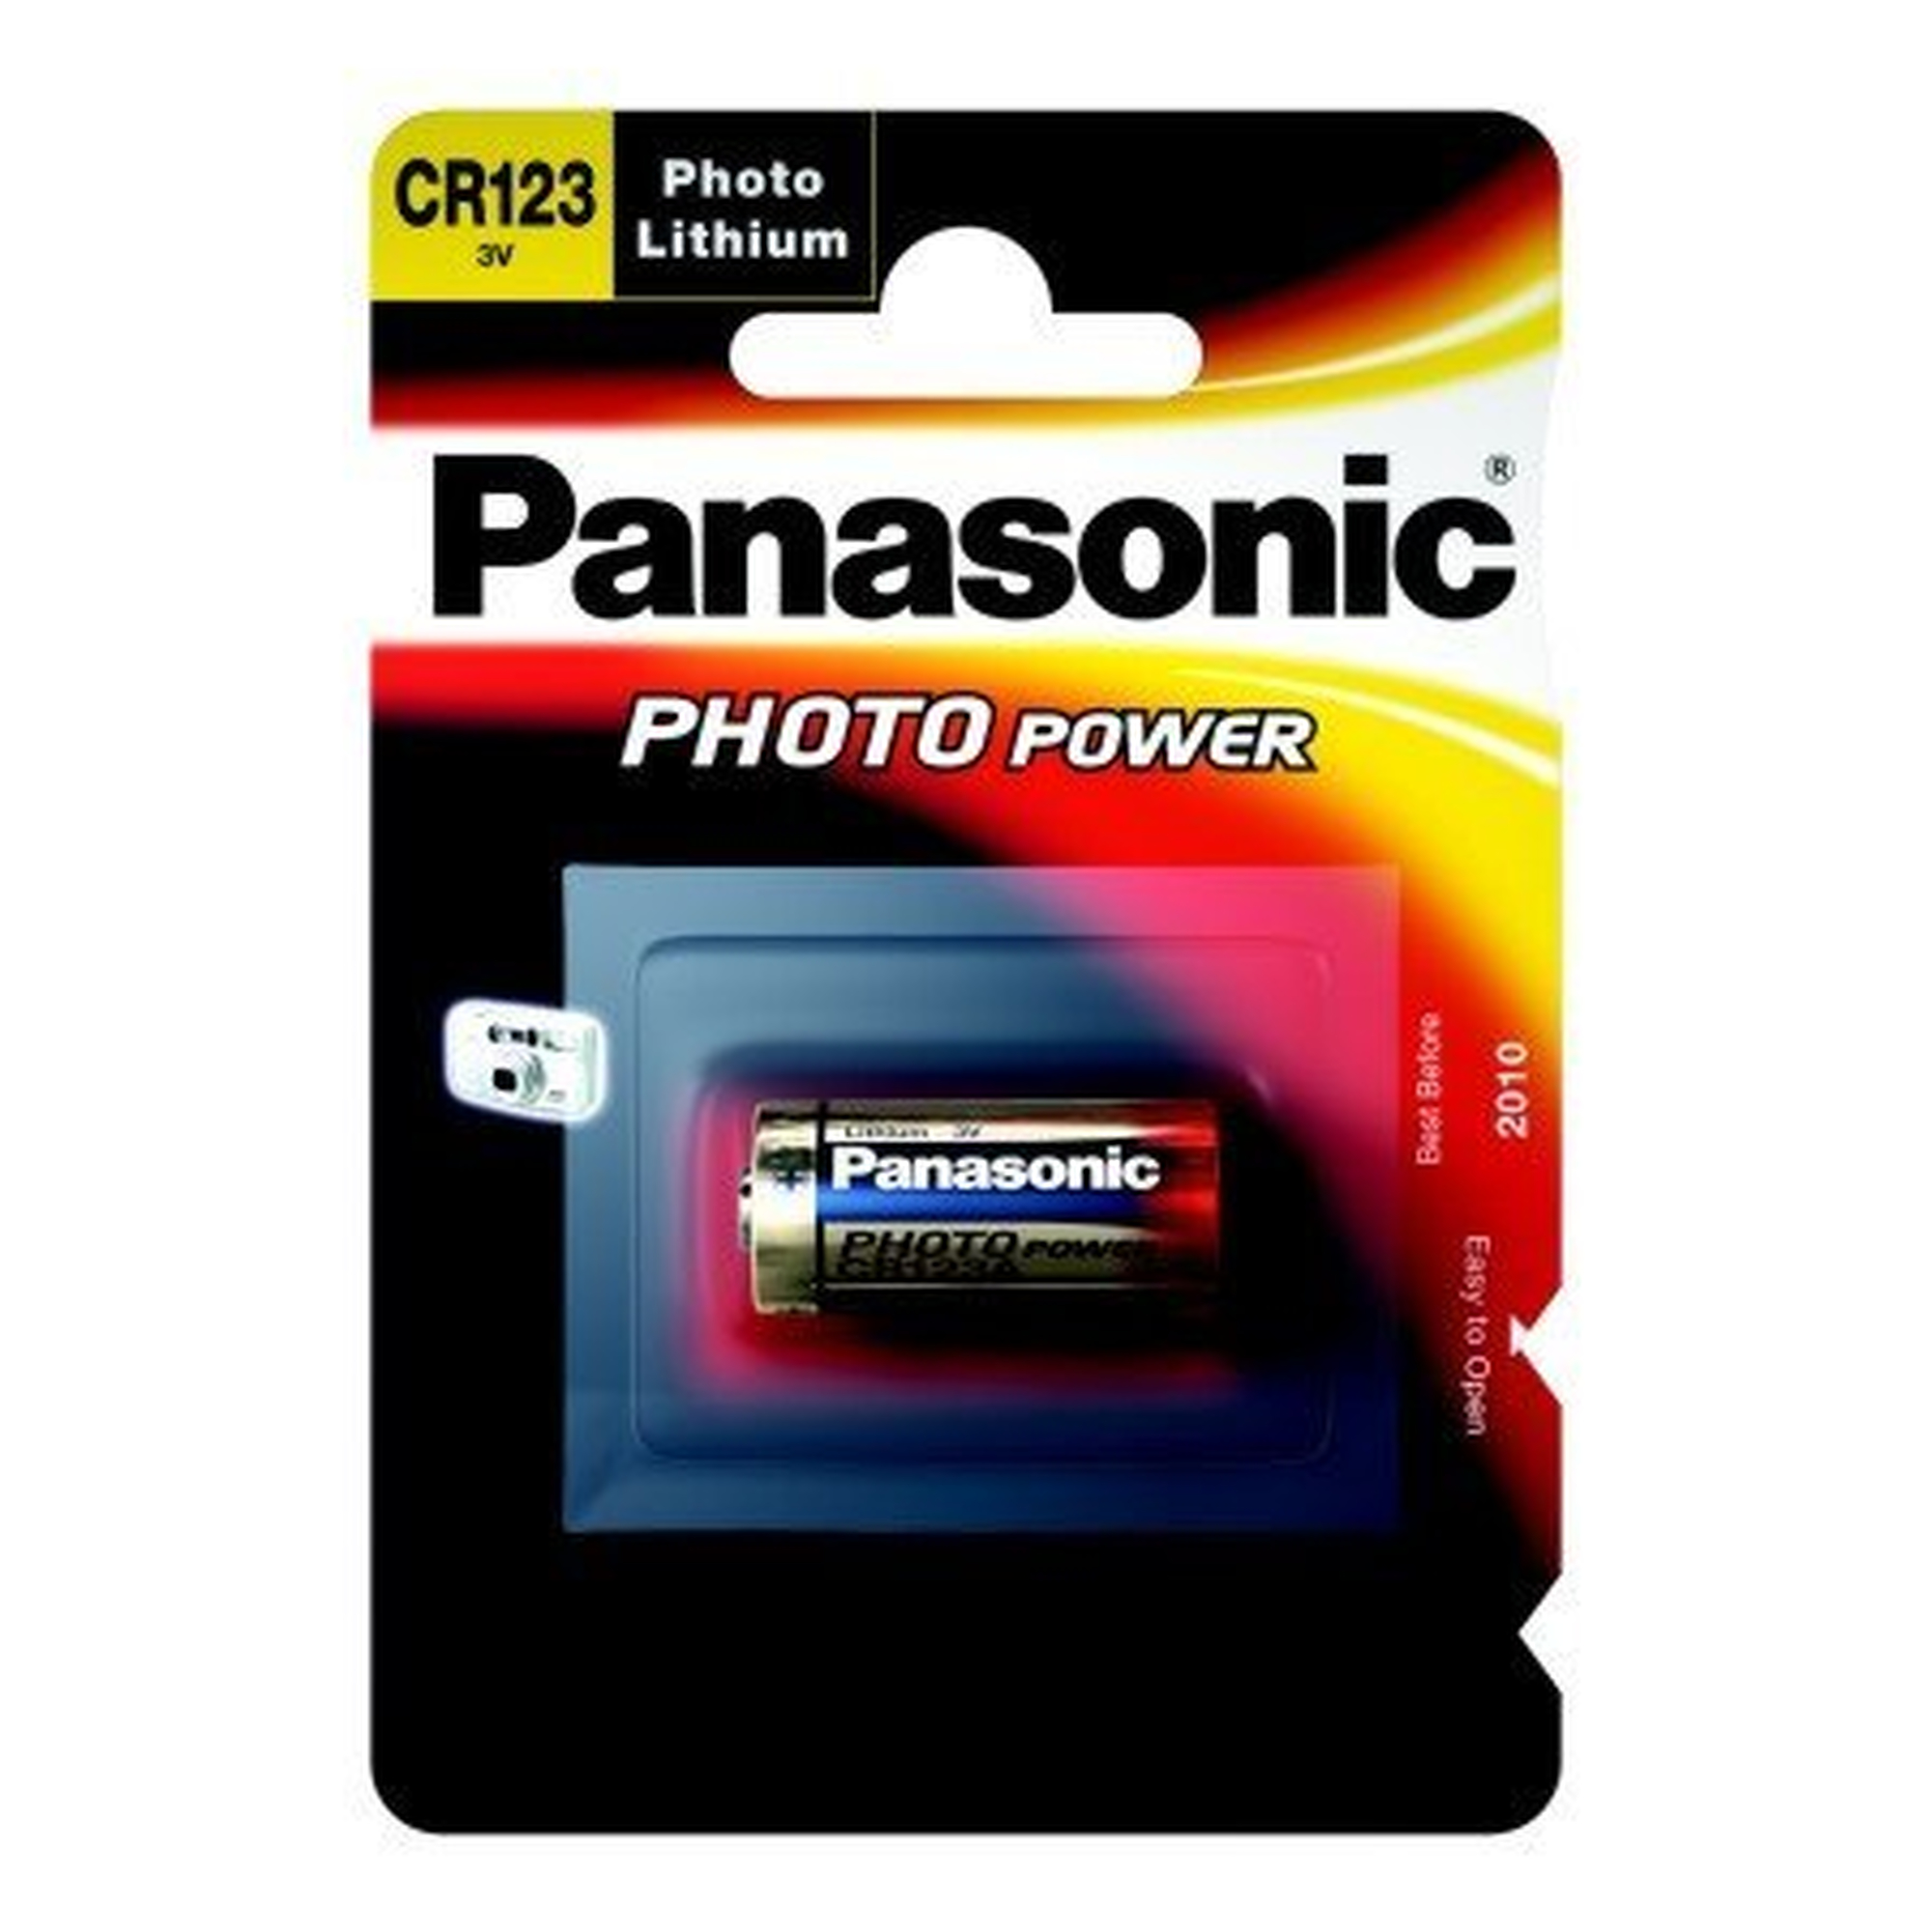 Panasonic Foto Batterie Lithium CR123A,1600 mAh,3V